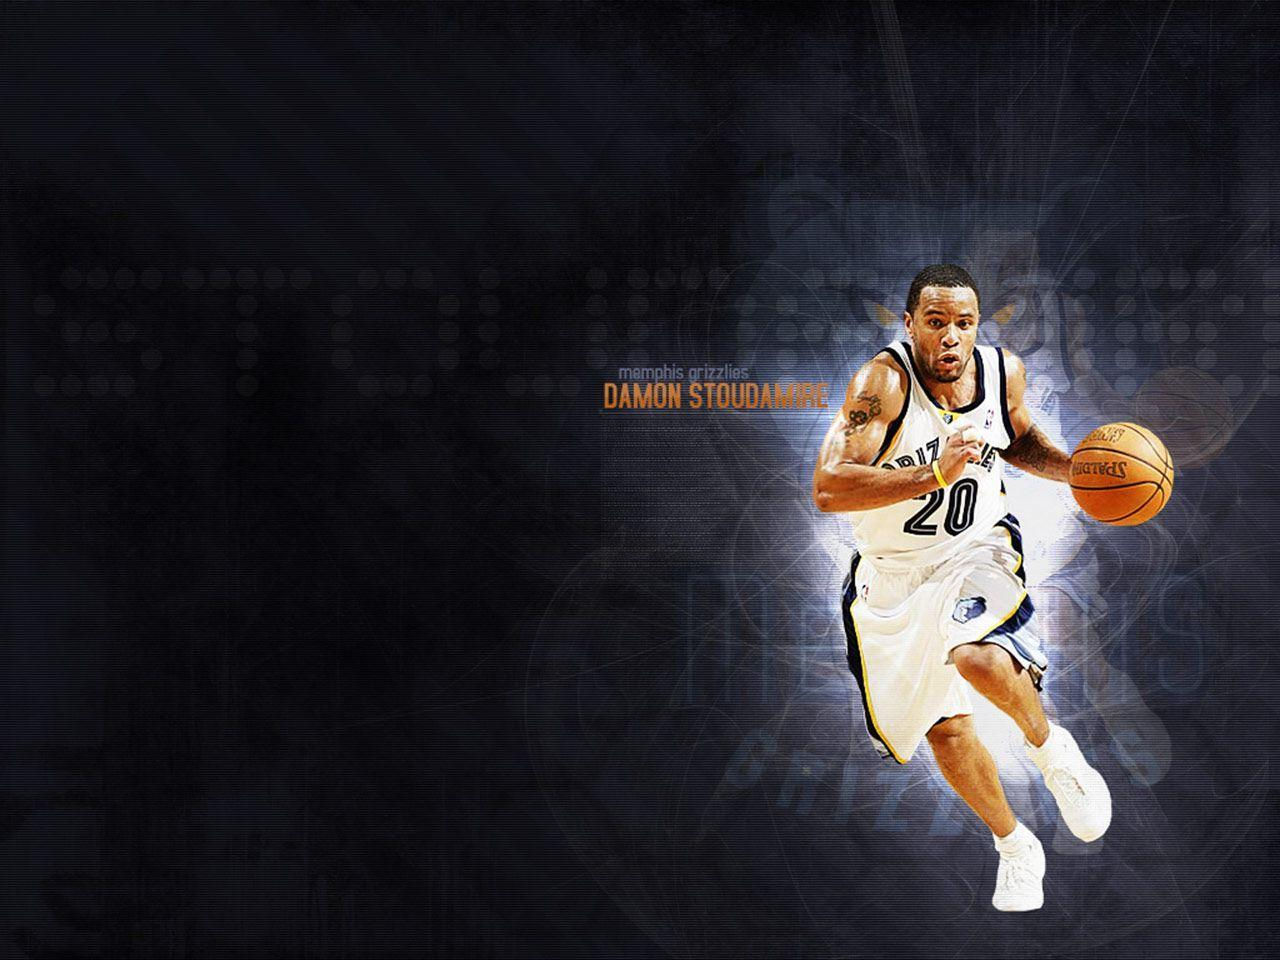 Damon Stoudamire Grizzlies Wallpaper | Basketball Wallpapers at ...